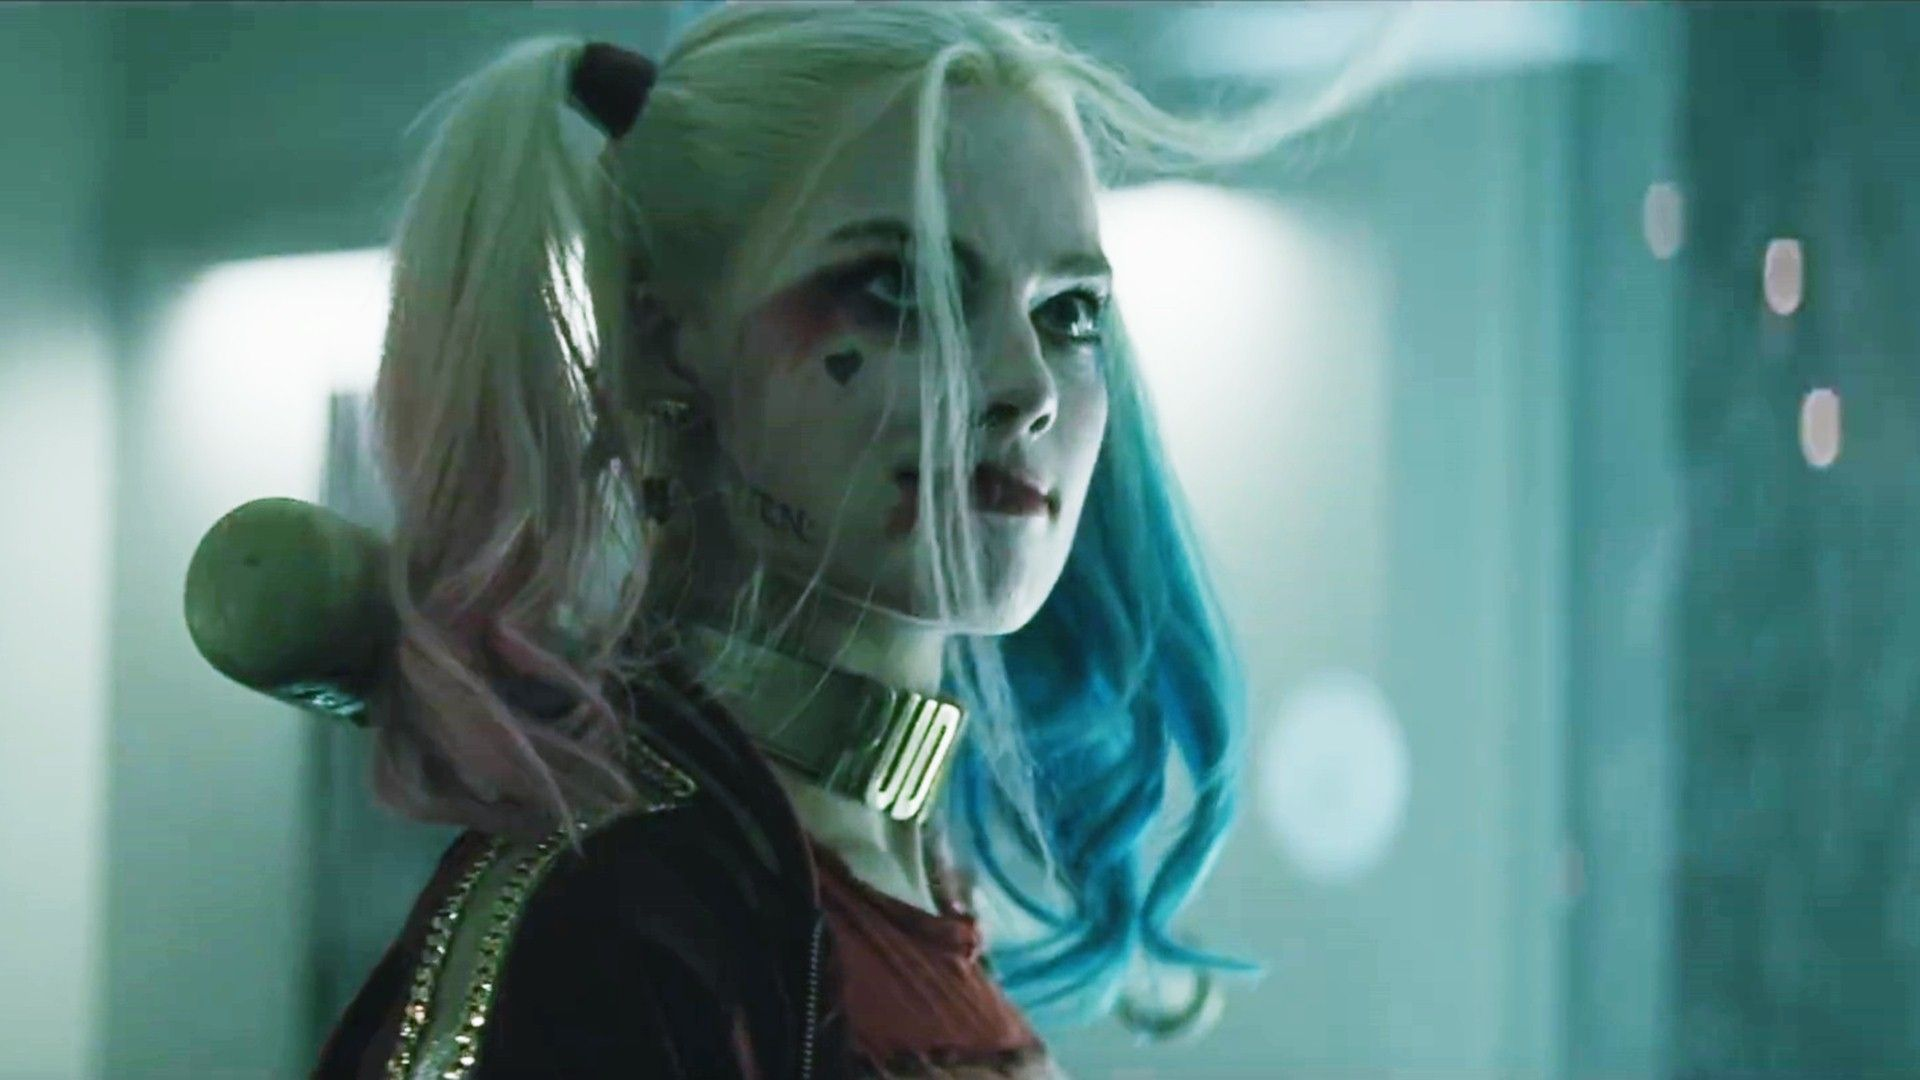 1920x1080 Harley Quinn In Suicide Squad 03389 - Baltana